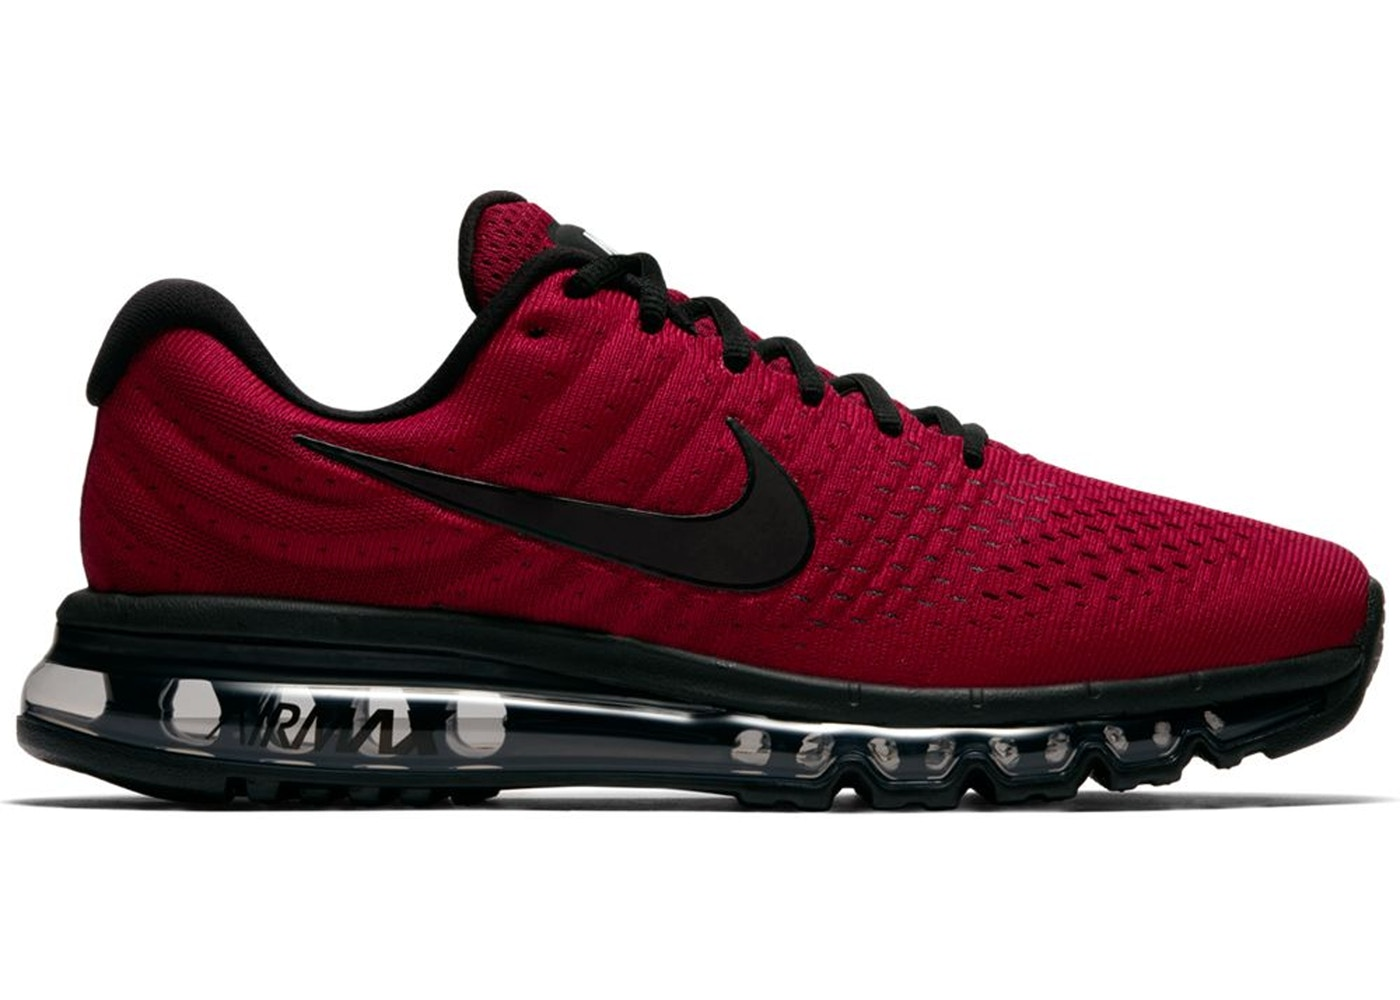 Air Max 2017 Team Red Black 849559 603